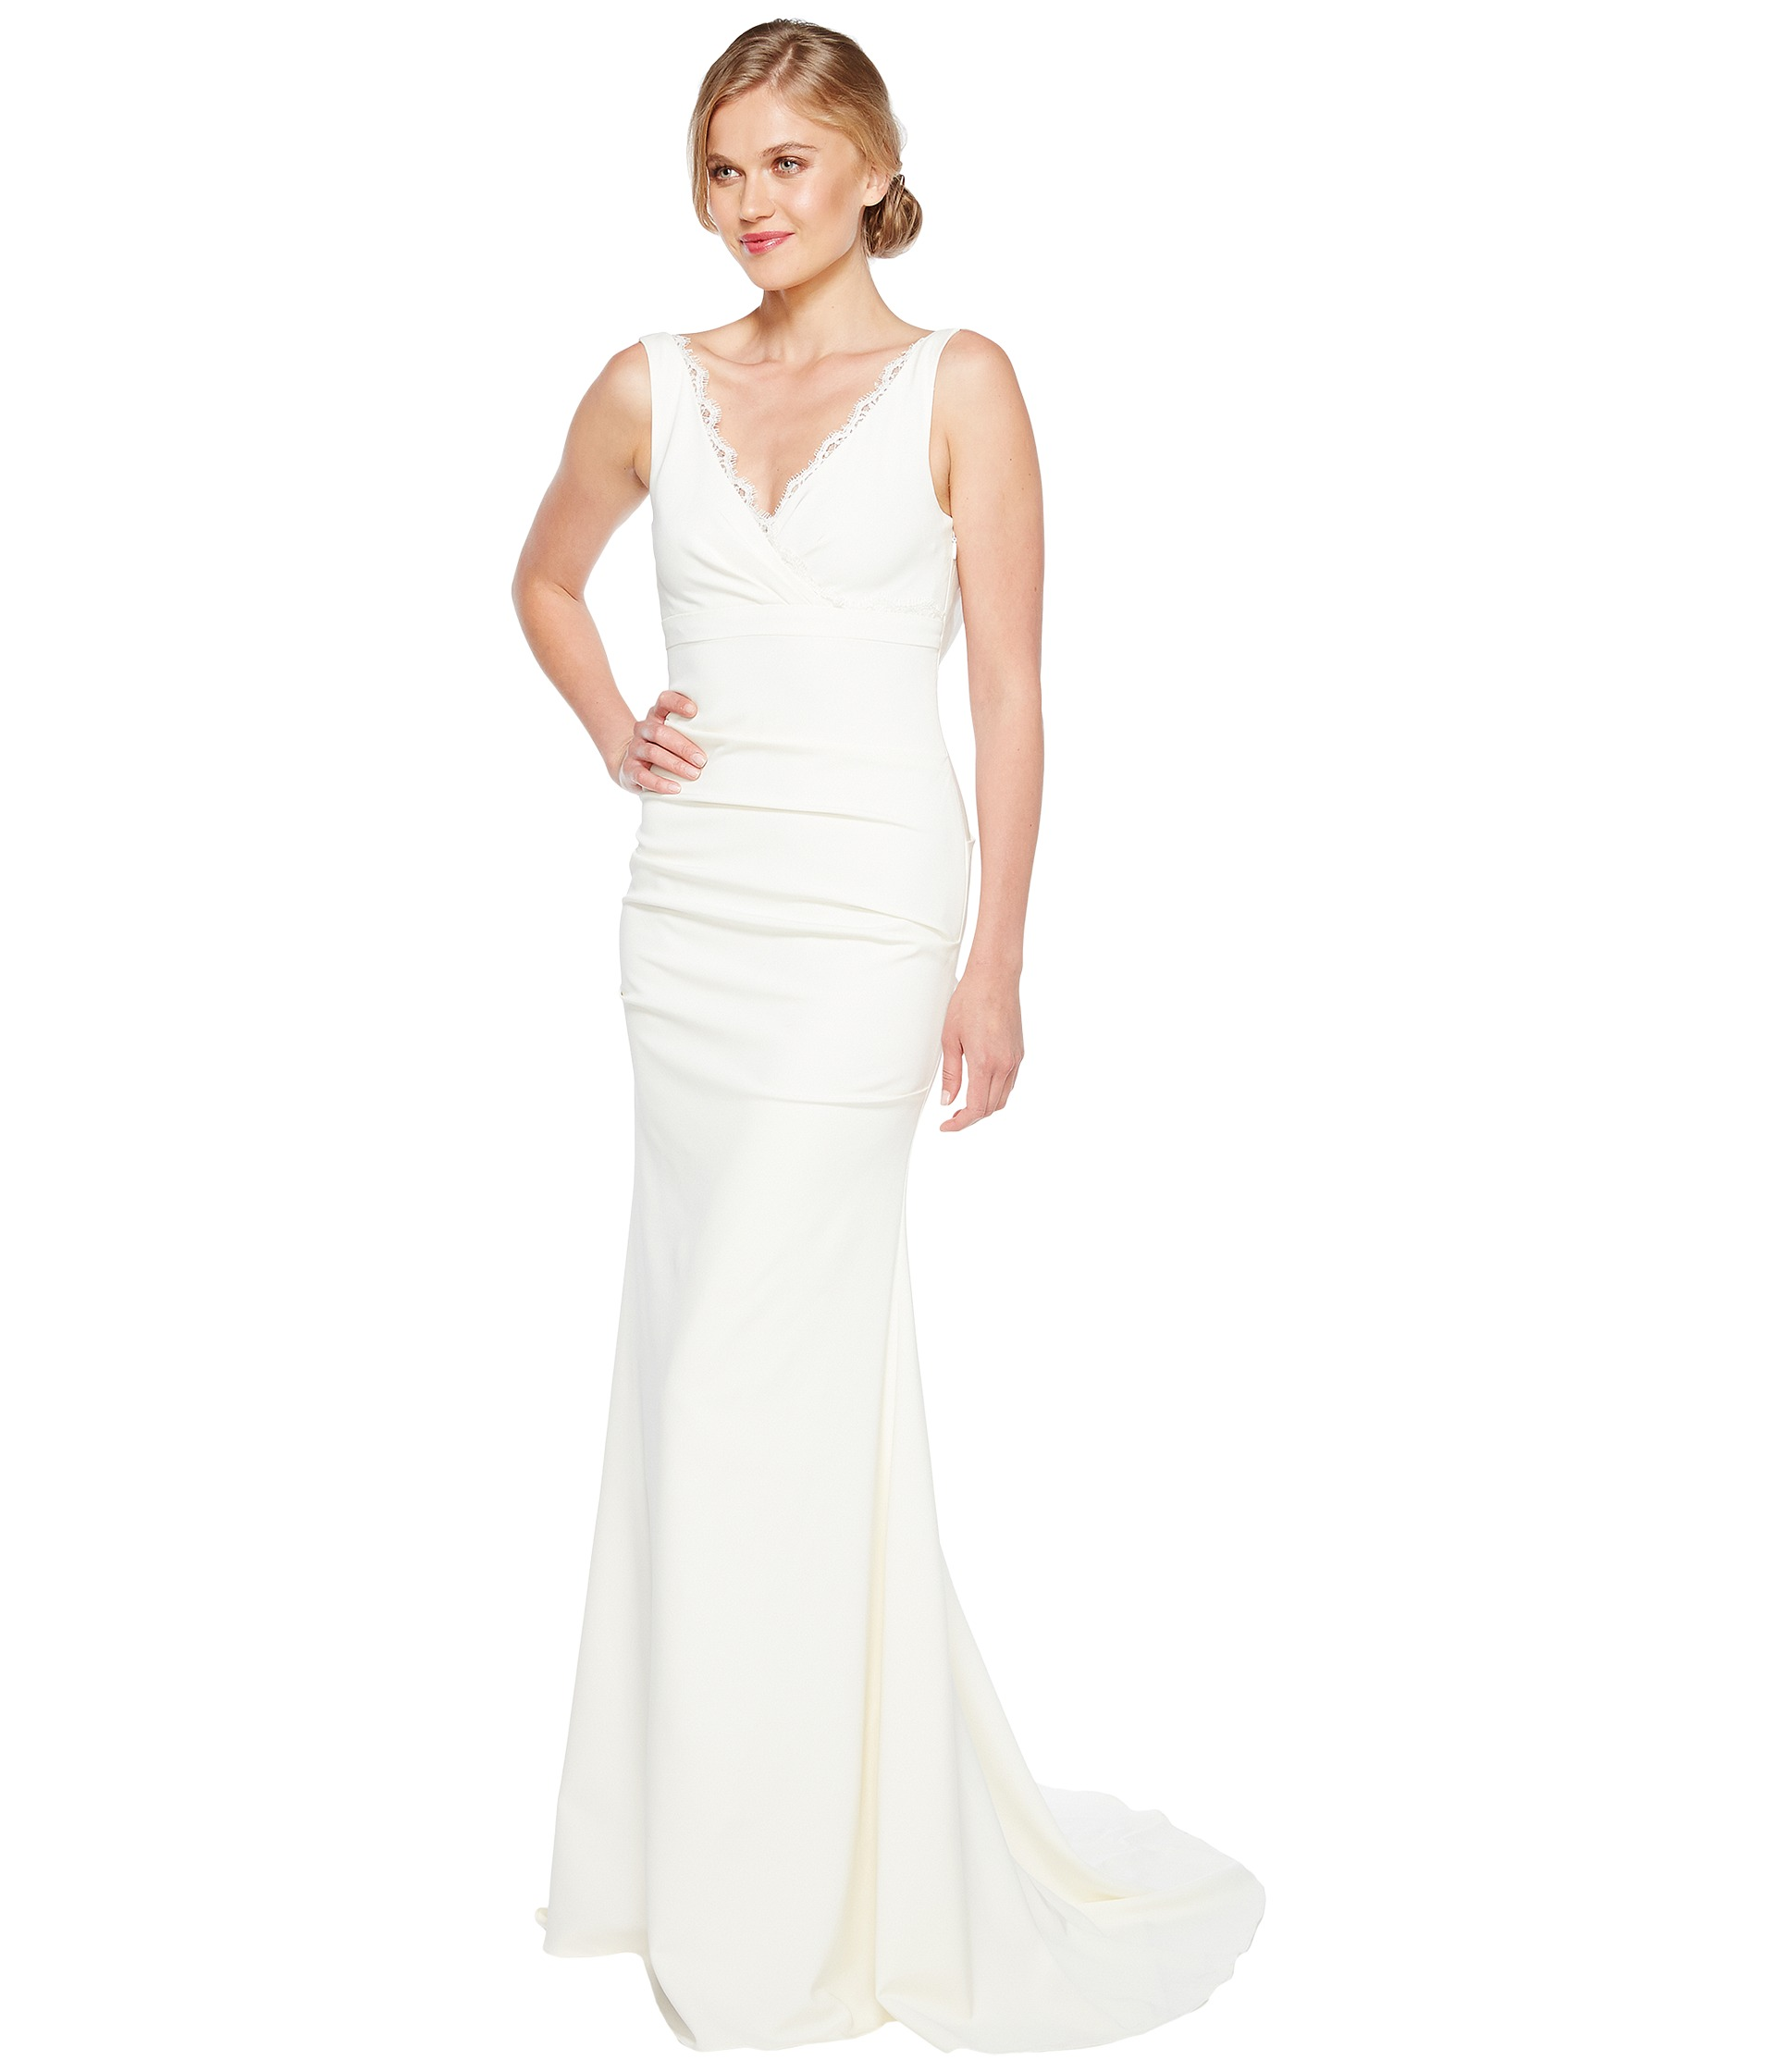 nicole miller wedding dresses nicole miller wedding dresses Nicole Miller Nina Bridal Gown Zappos Com Free Shipping Both Ways